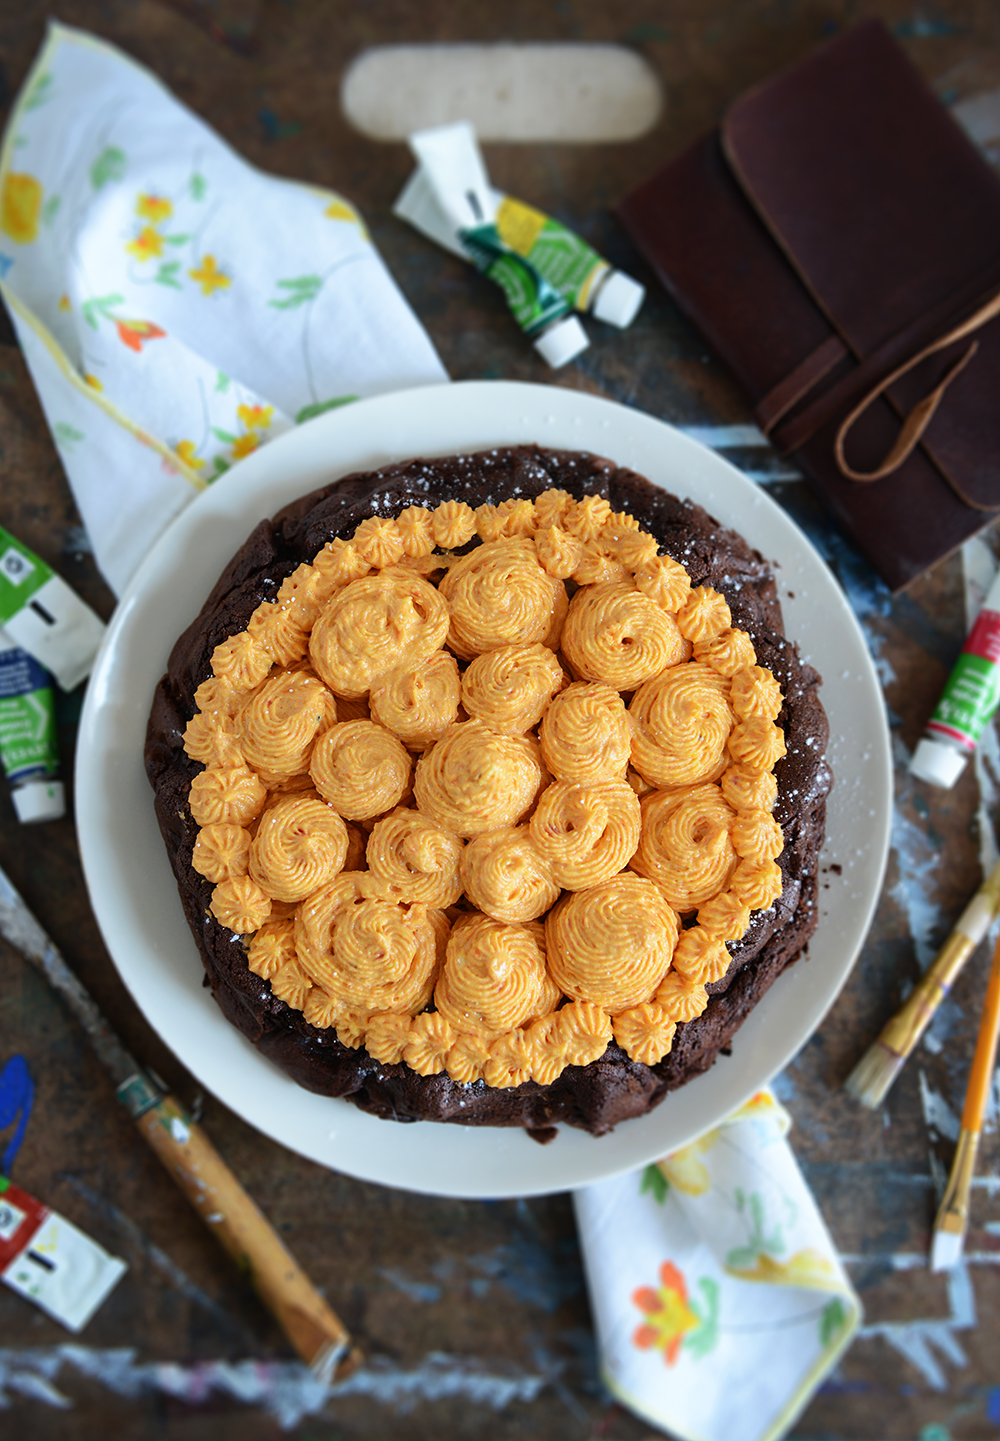 Flourless Dark Chocolate Torte with Roasted Carrot Buttercream